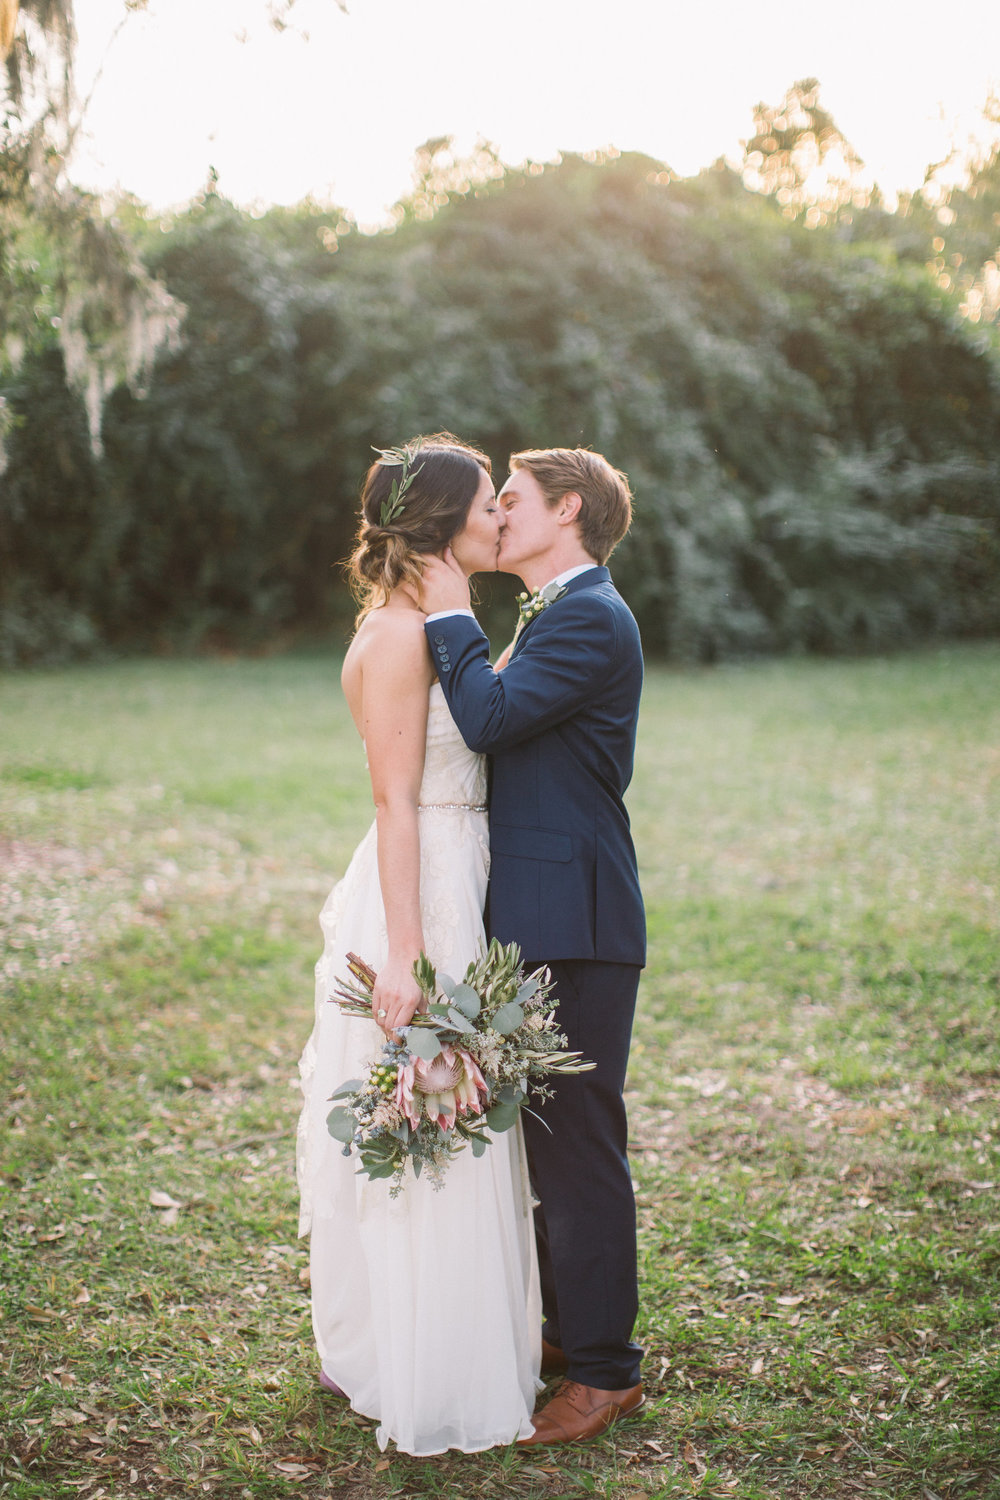 FALYN'S BOHO BOONE HALL PLANTATION WEDDING